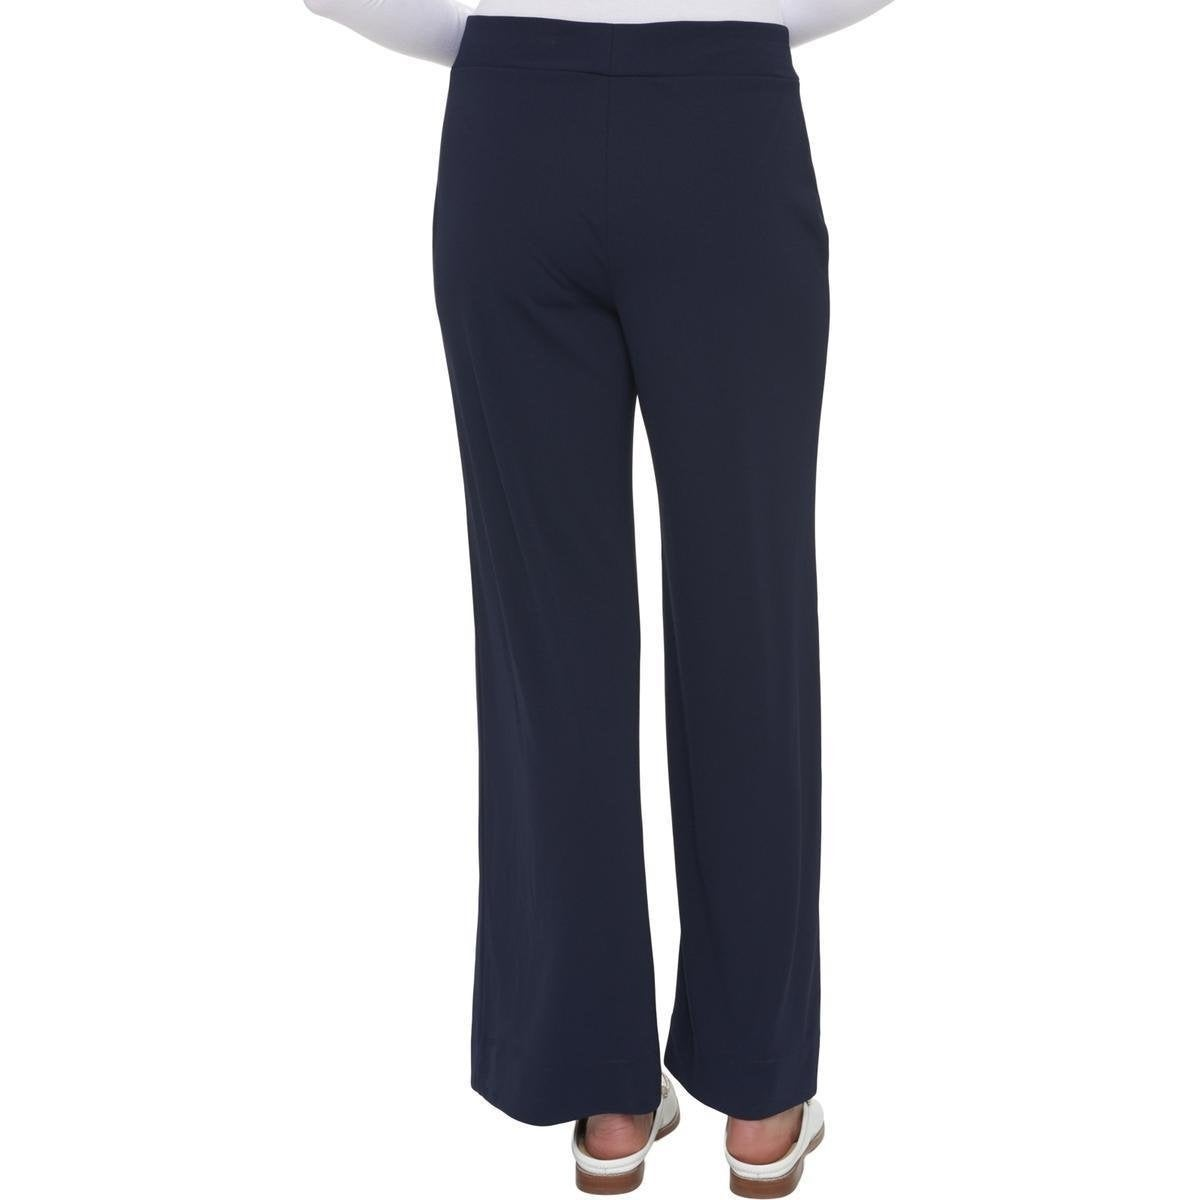 36fa024935 Shop Tommy Hilfiger Navy Blue Women's Size Small S Stretch Dress Pants - On  Sale - Free Shipping On Orders Over $45 - Overstock - 26972036